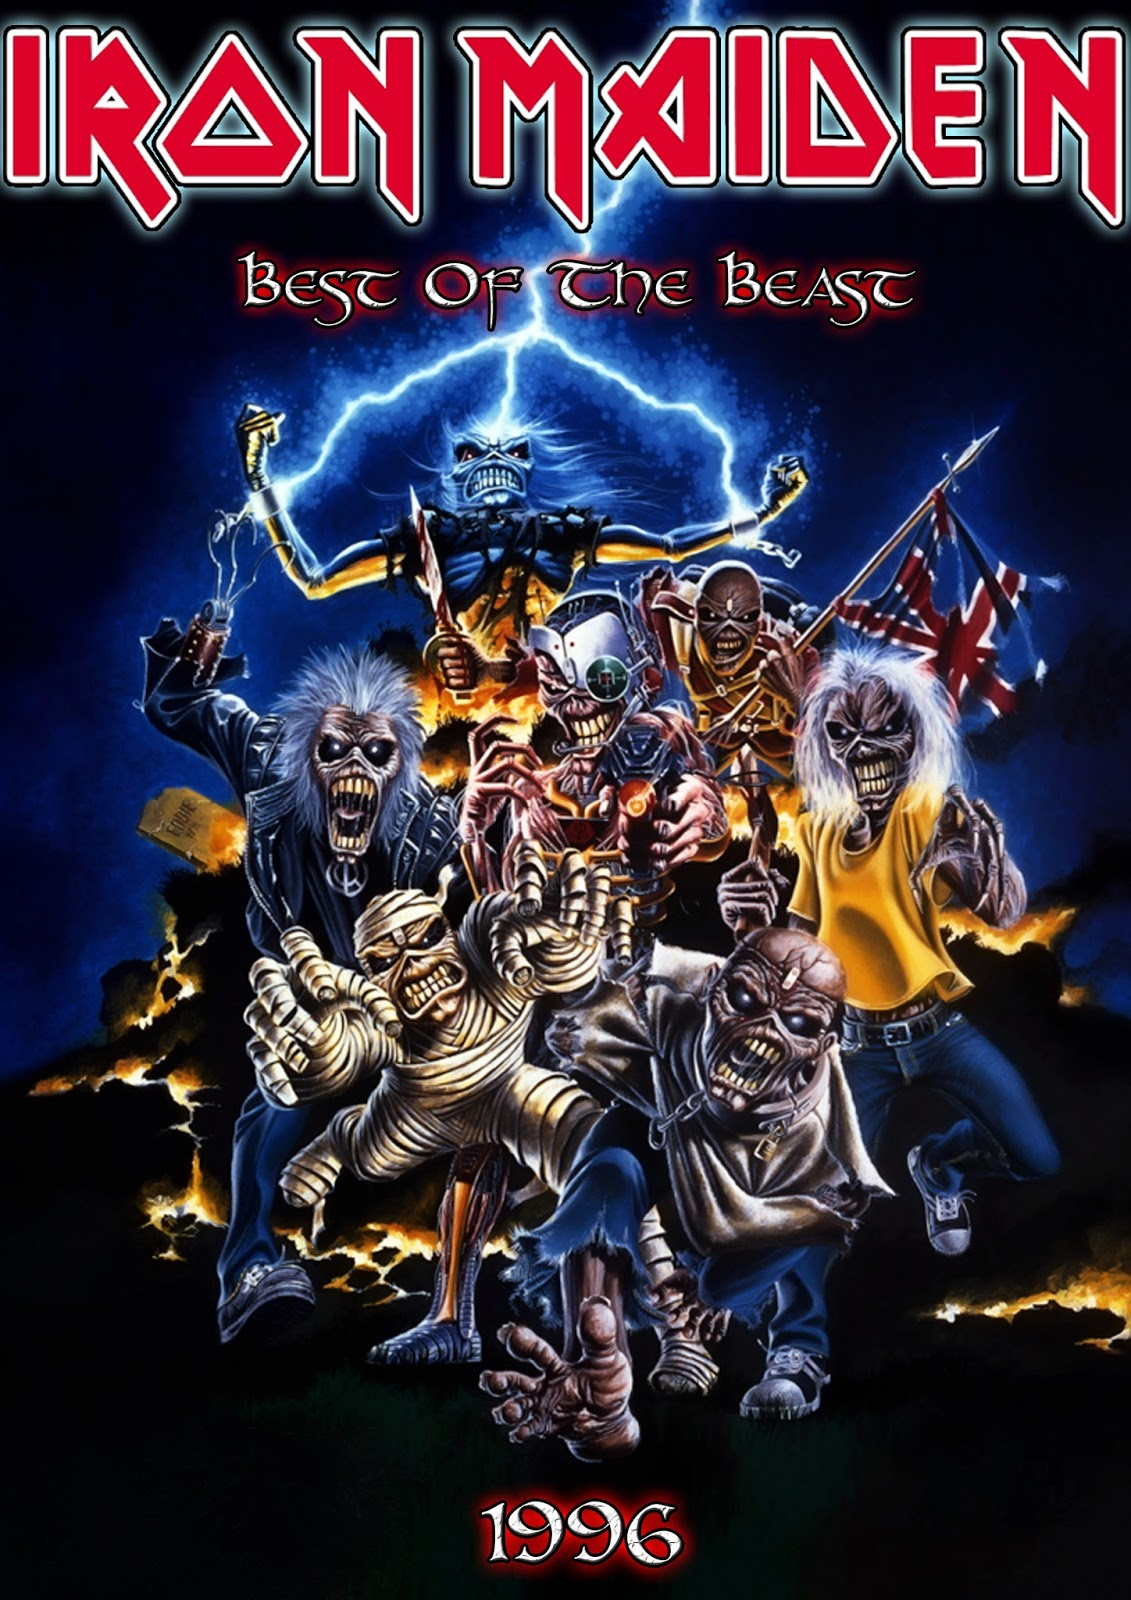 Metal Wallpaper Nash Iron Maiden Best Of The Beast